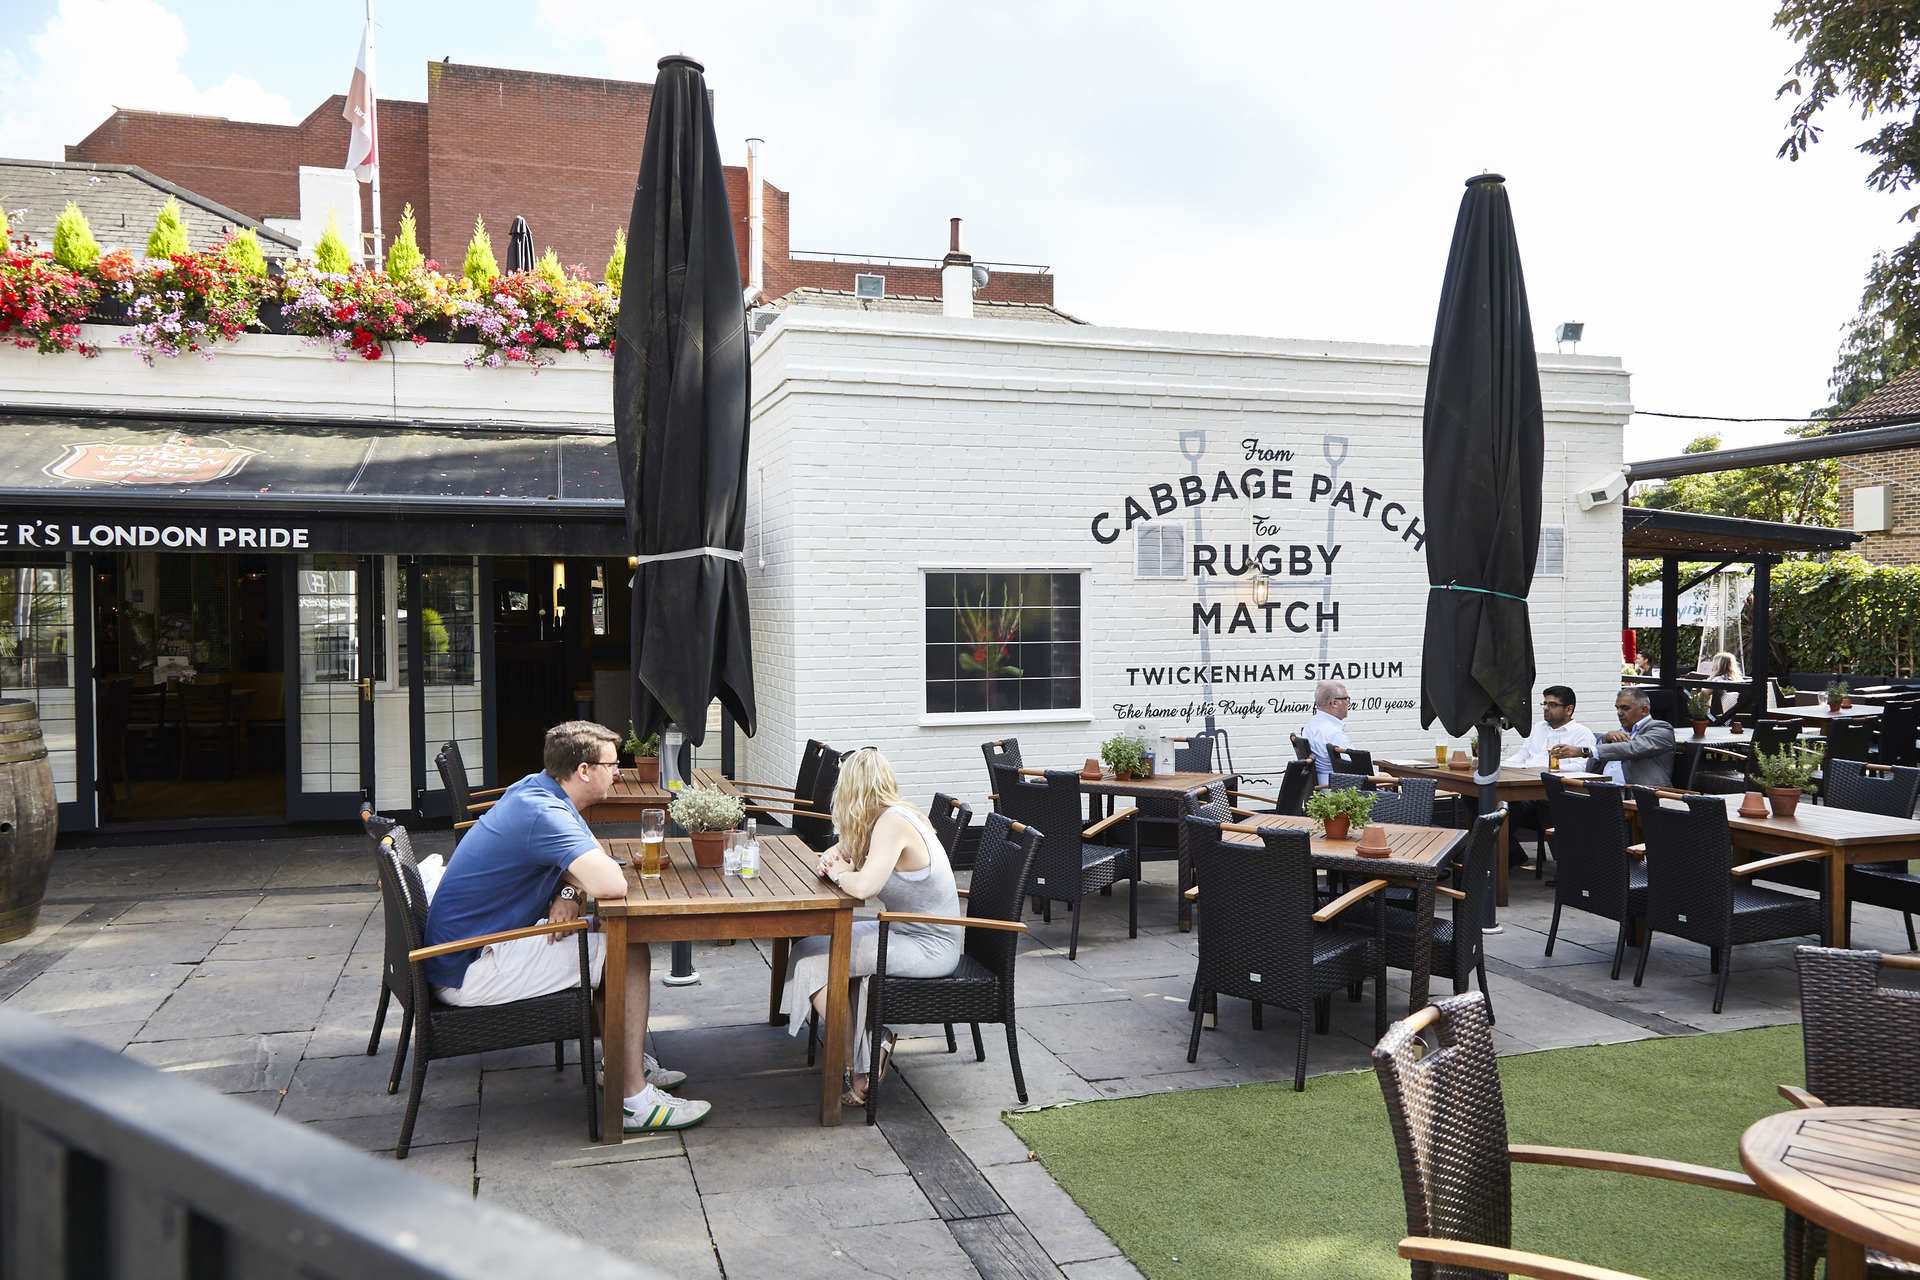 London's best rugby pubs The Cabbage Patch